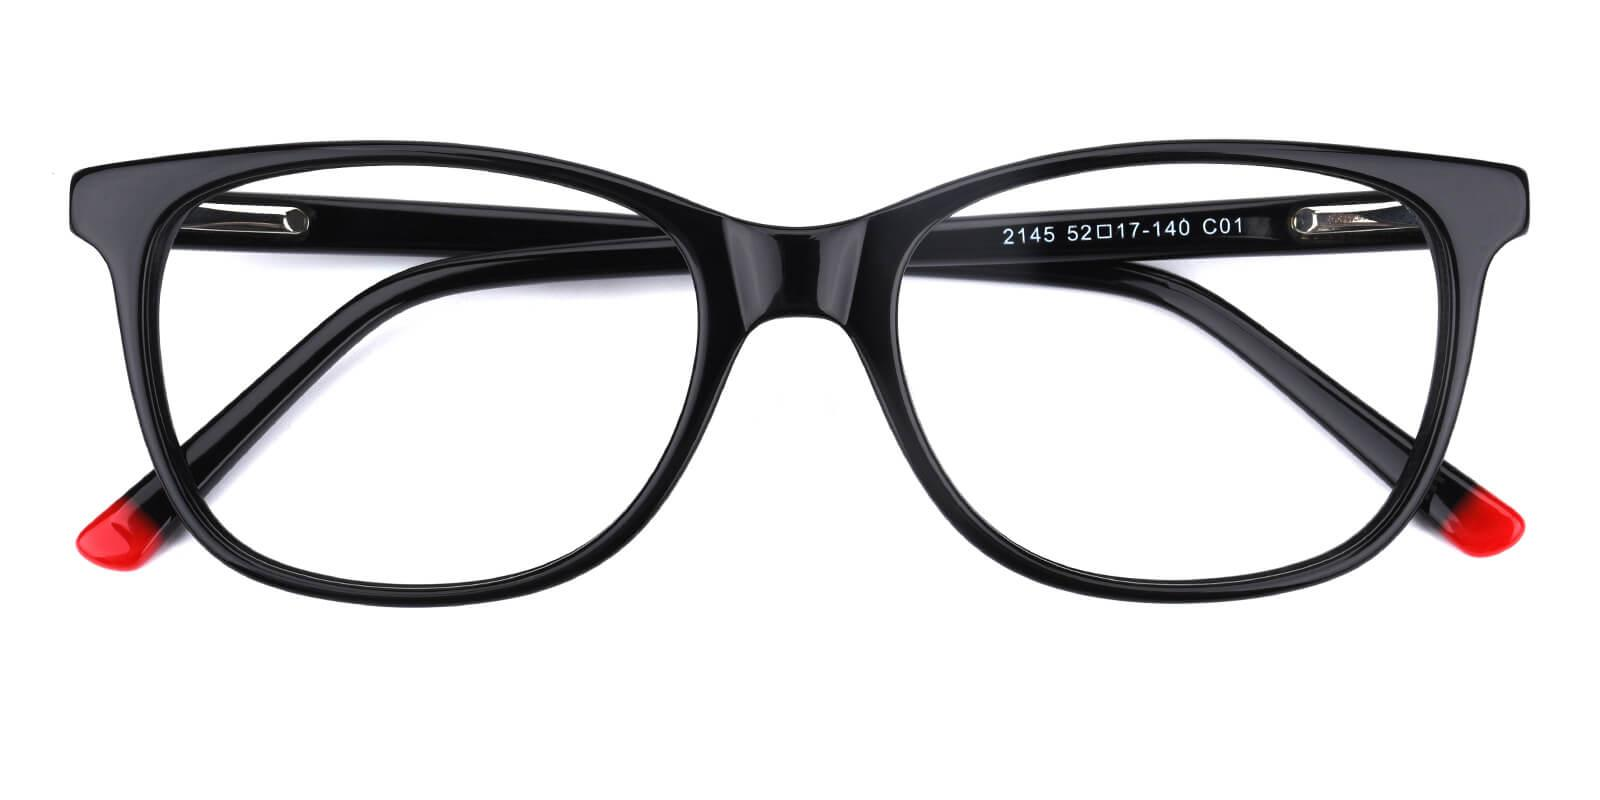 Sandwich-Black-Square-Acetate-Eyeglasses-detail